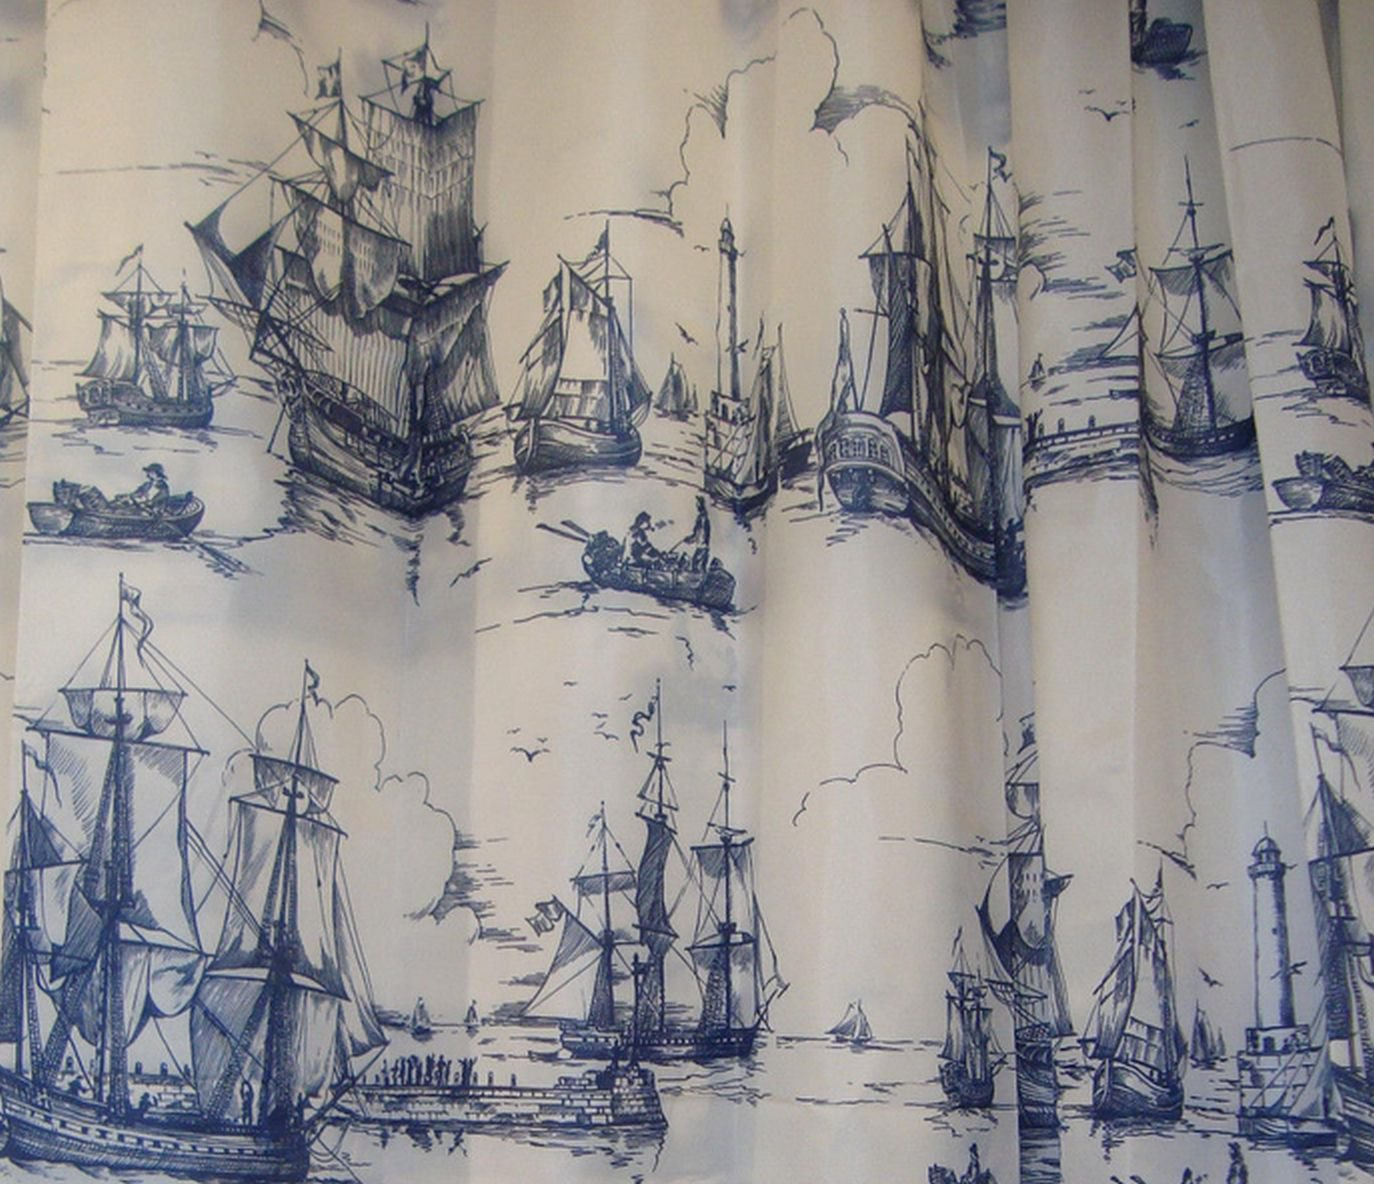 ikea aggersund boats fabric shower curtain blue white nautical sailing ships naval - Ikea Shower Curtains